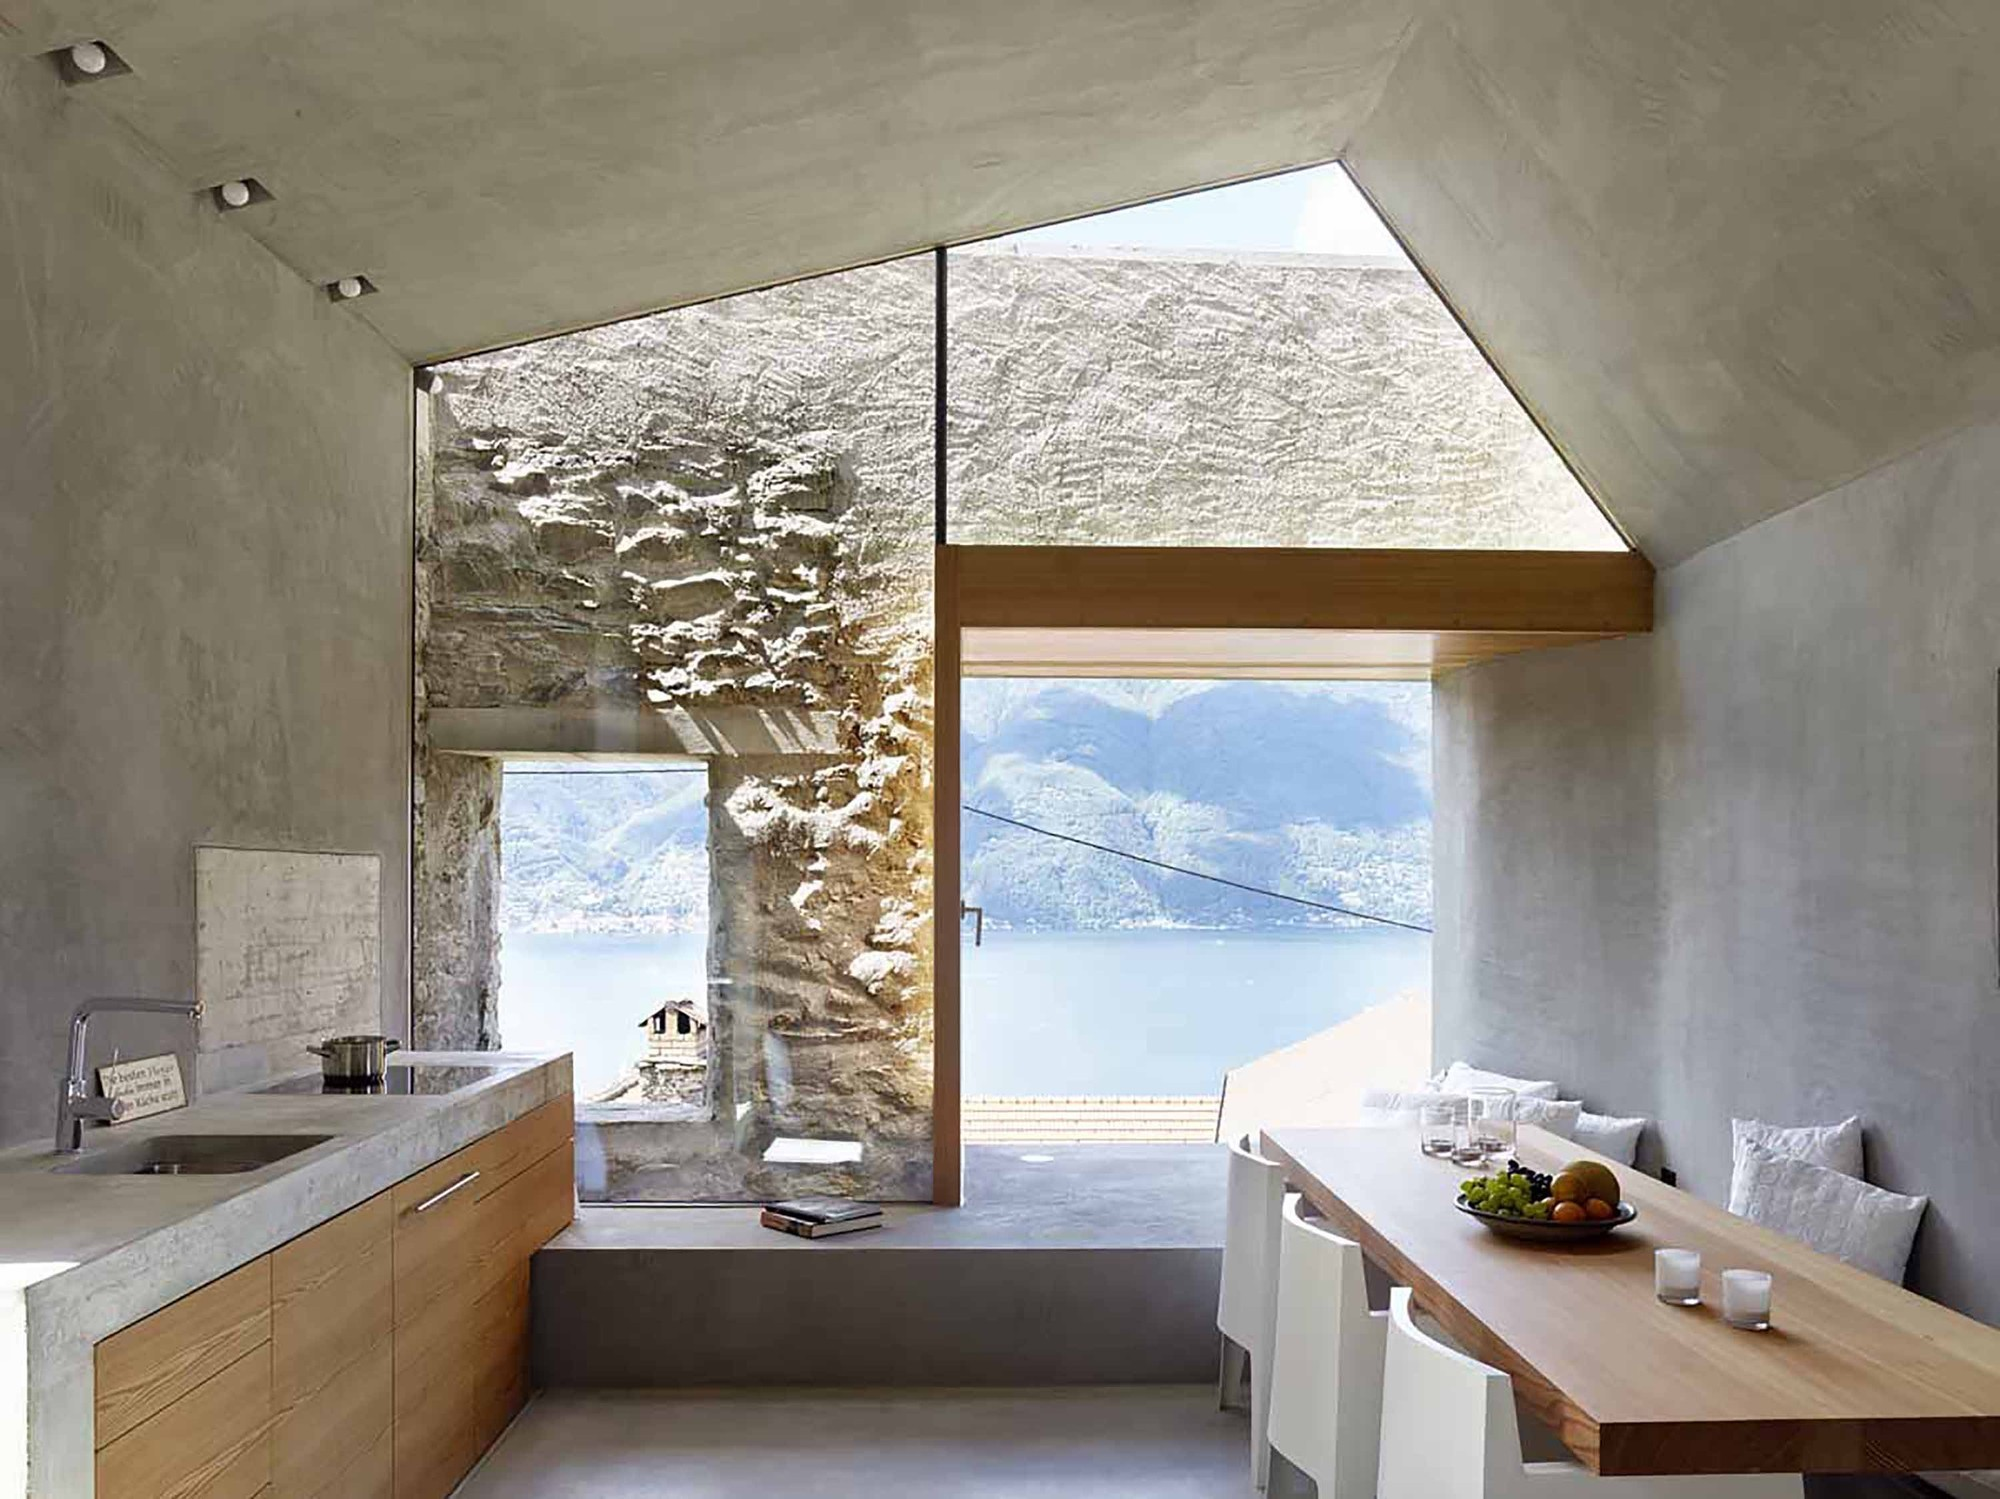 Gallery of Kitchens that Double As Dining Rooms: Architectural Design Inspiration  - 2